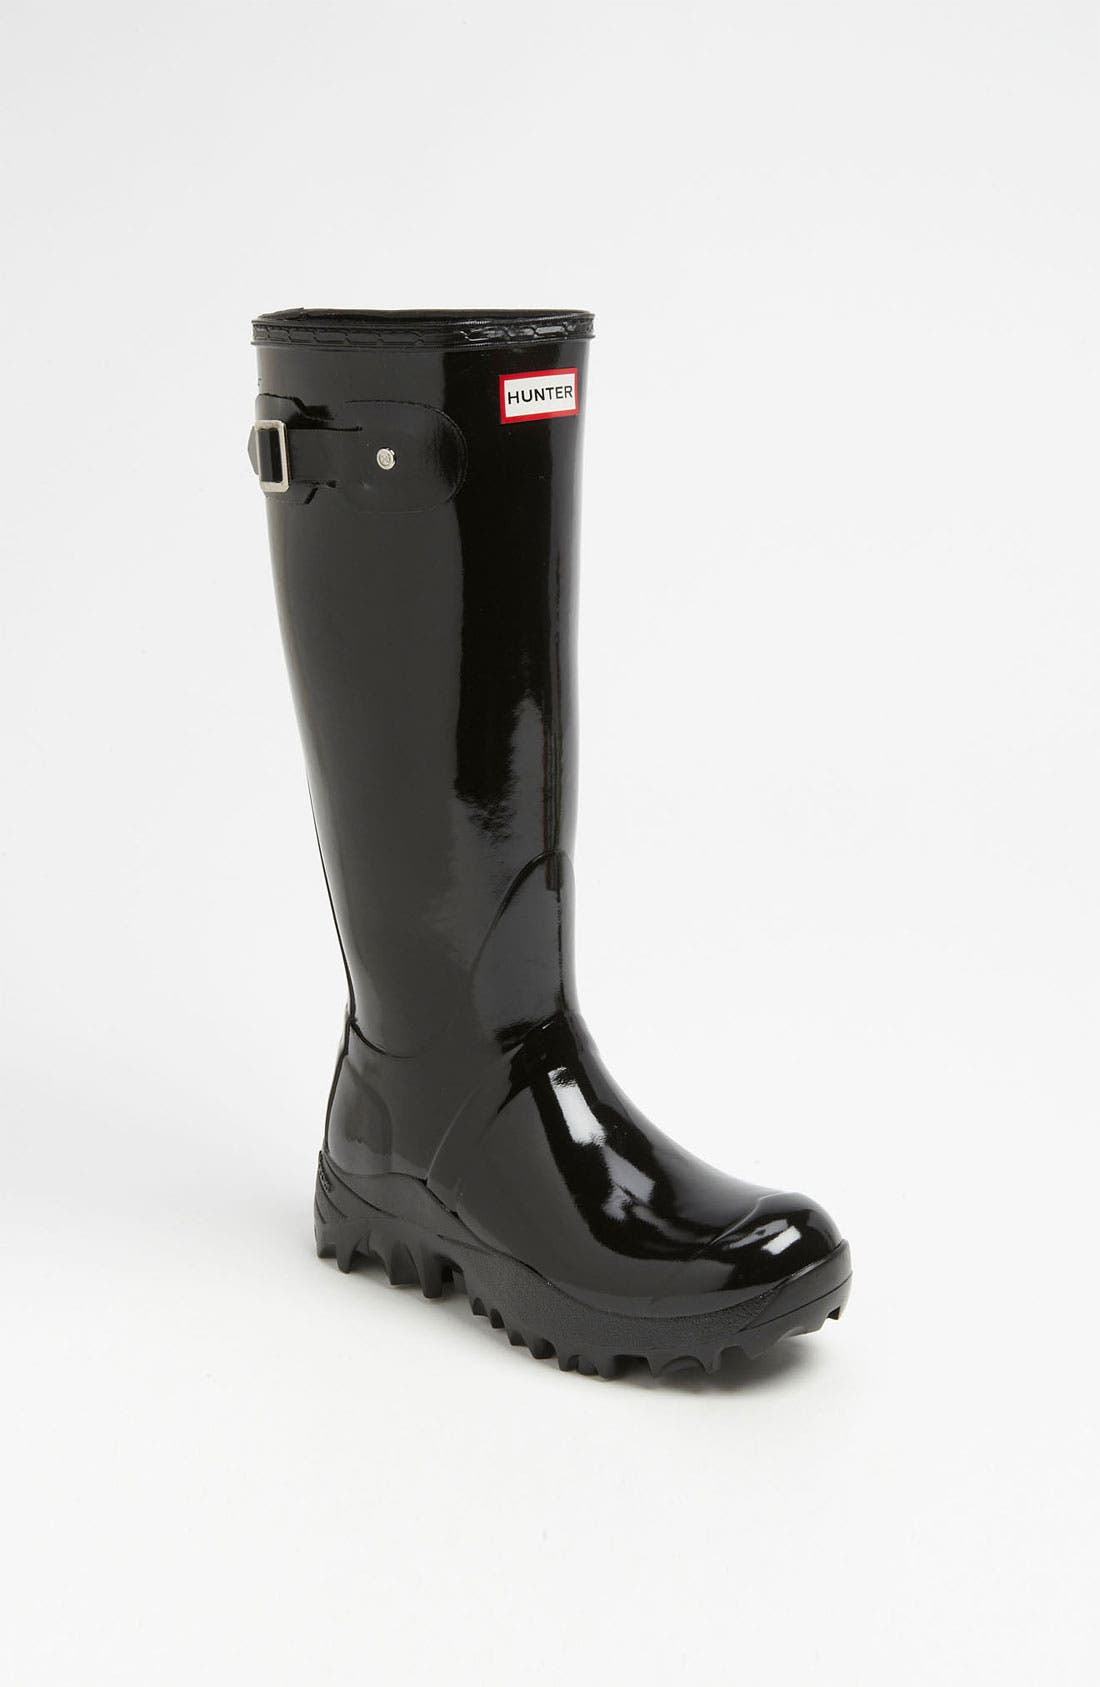 Main Image - Hunter 'Snow' Gloss Rain Boot (Women)